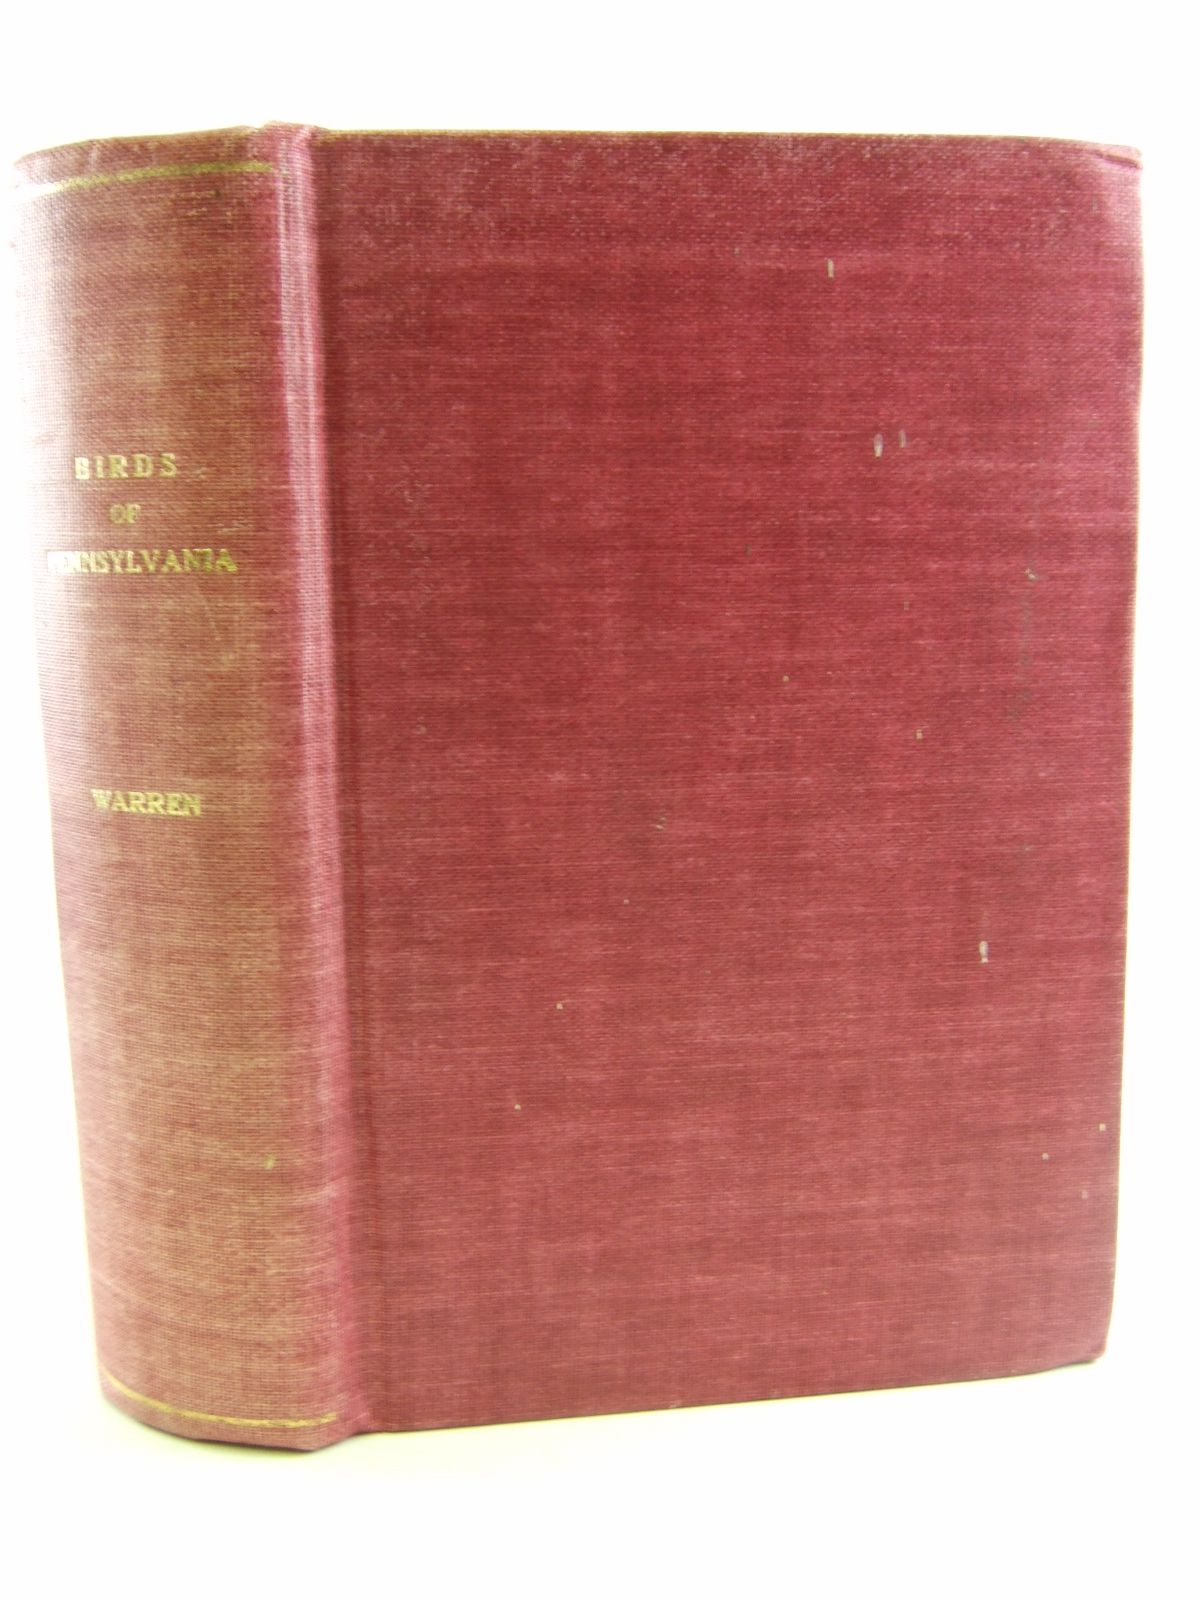 Photo of REPORT ON THE BIRDS OF PENNSYLVANIA written by Warren, B.H. published by E.K. Cole Ltd. (STOCK CODE: 1805598)  for sale by Stella & Rose's Books